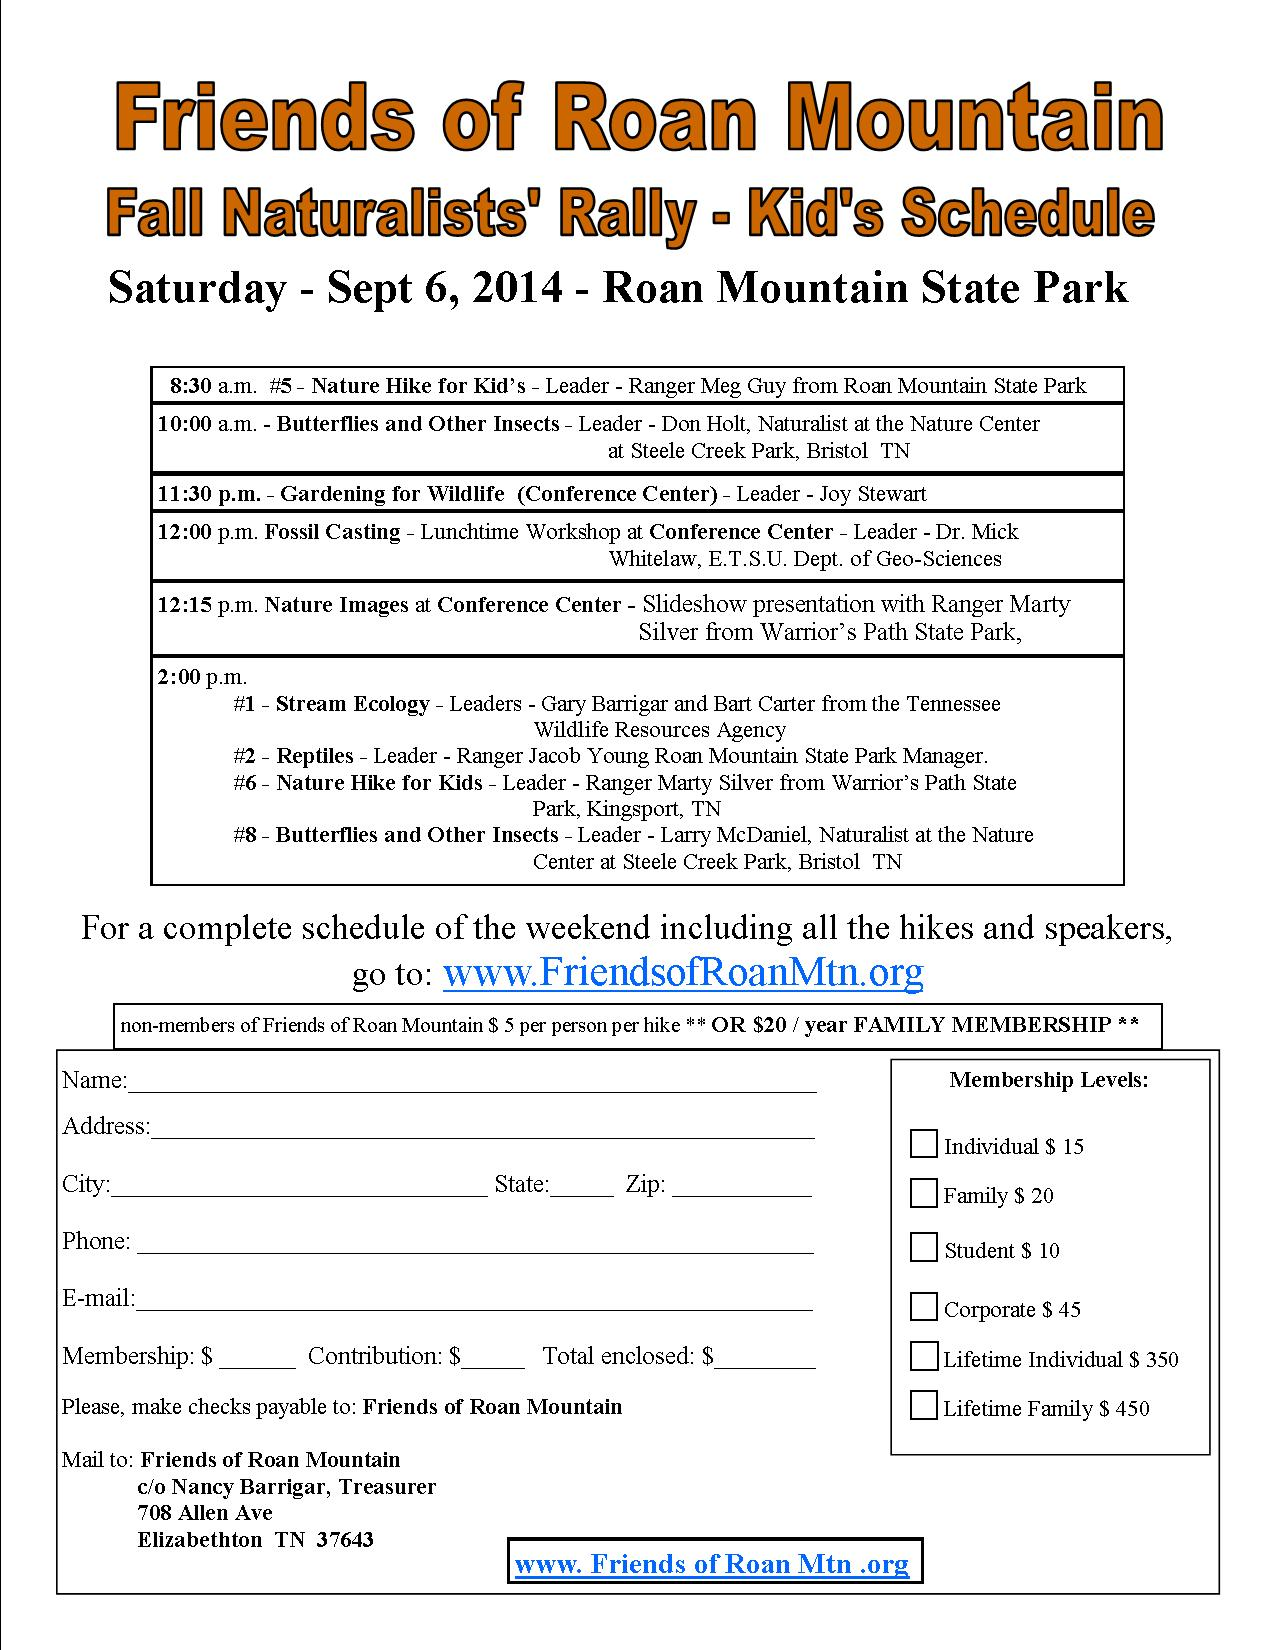 kids version of the Fall Naturalists Schedule